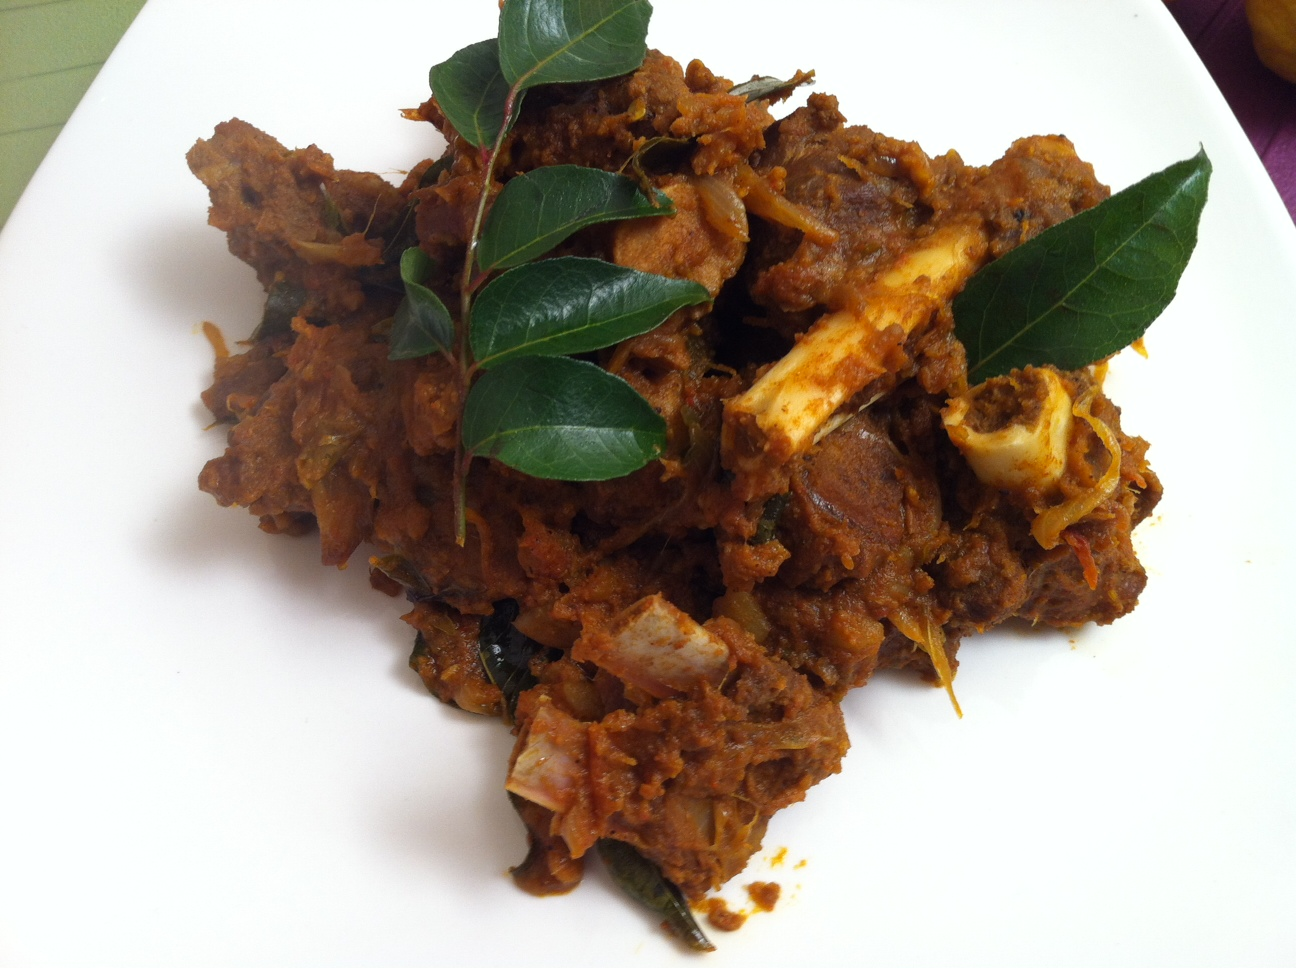 Mutton Roast Attirachi Varattiyathu Kerala Mutton Roast Recipe